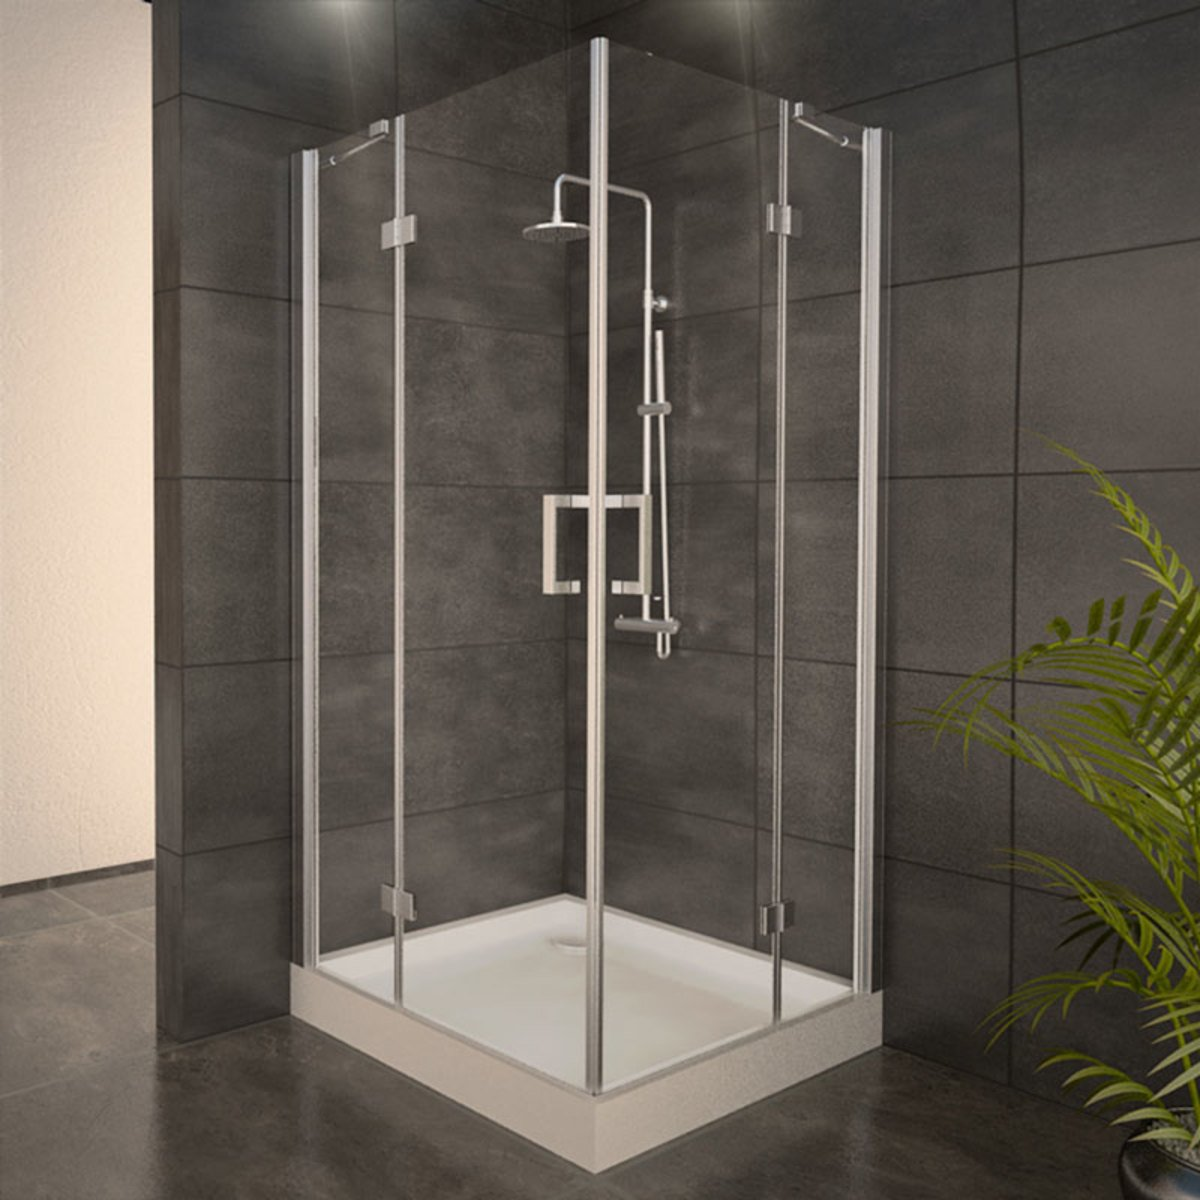 adema glass cabine de douche carr avec 2 portes pivotantes 90x90x210cm vitre claire avec. Black Bedroom Furniture Sets. Home Design Ideas